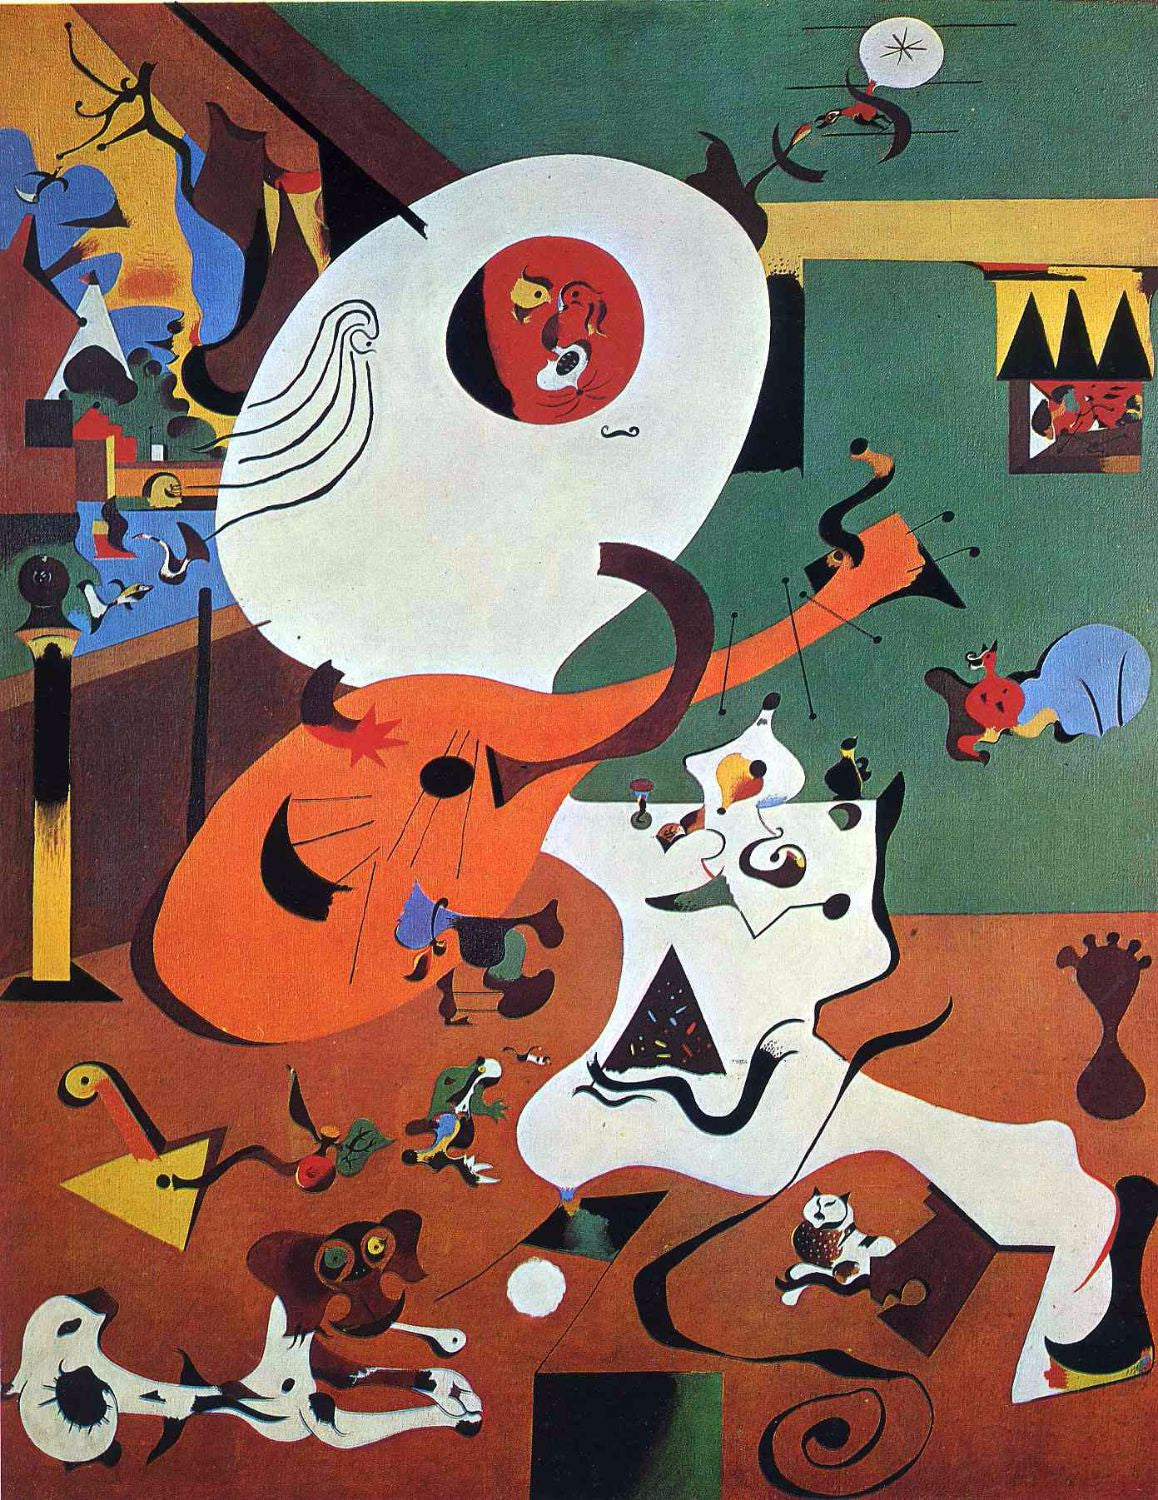 Joan Miró | Buy Posters, Frames, Canvas, Digital Art & Large Size Prints Of The Famous Modern Master's Artworks